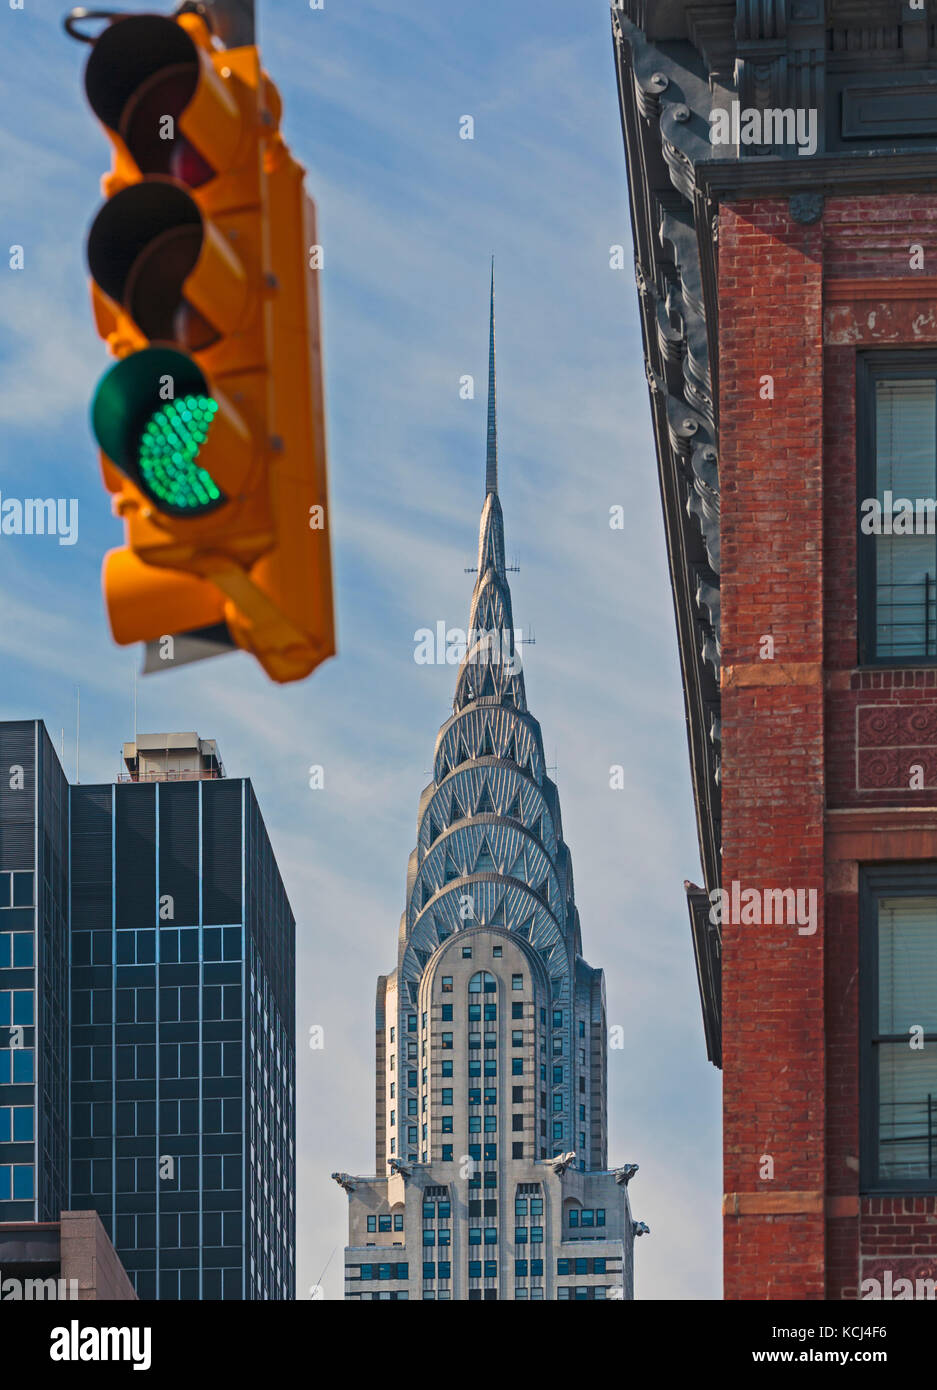 New York City, New York State, United States of America.  The Chrysler Building.  An Art Deco style skyscraper. - Stock Image